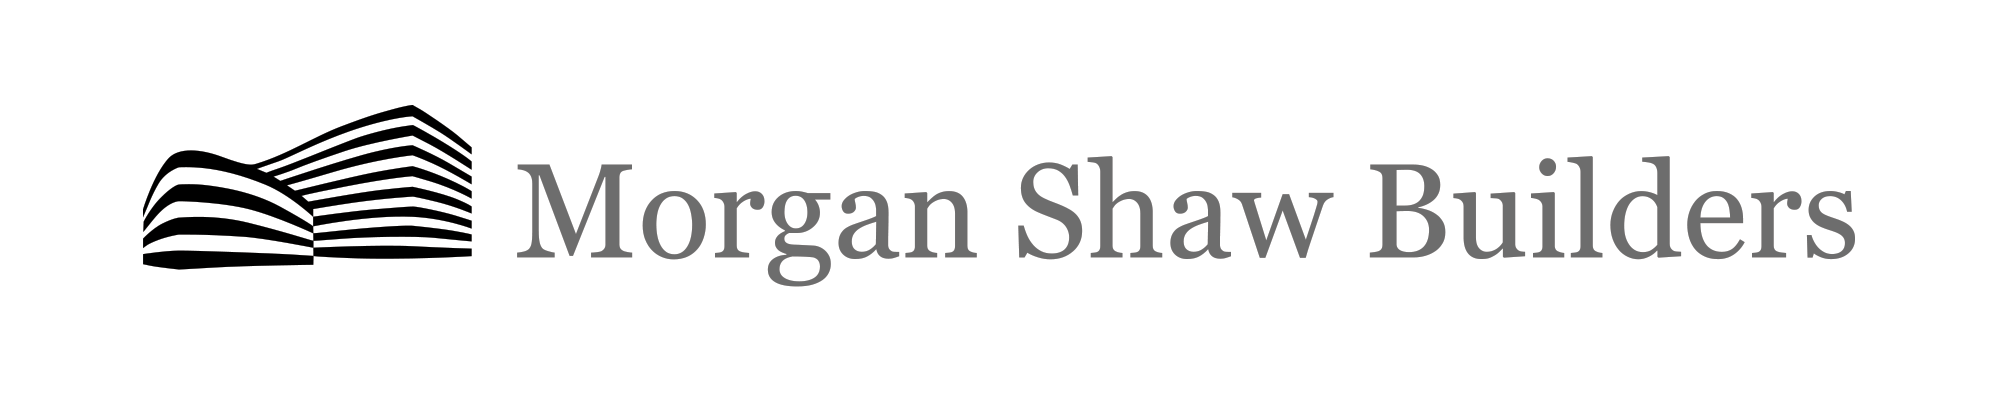 Morgan Shaw Builders